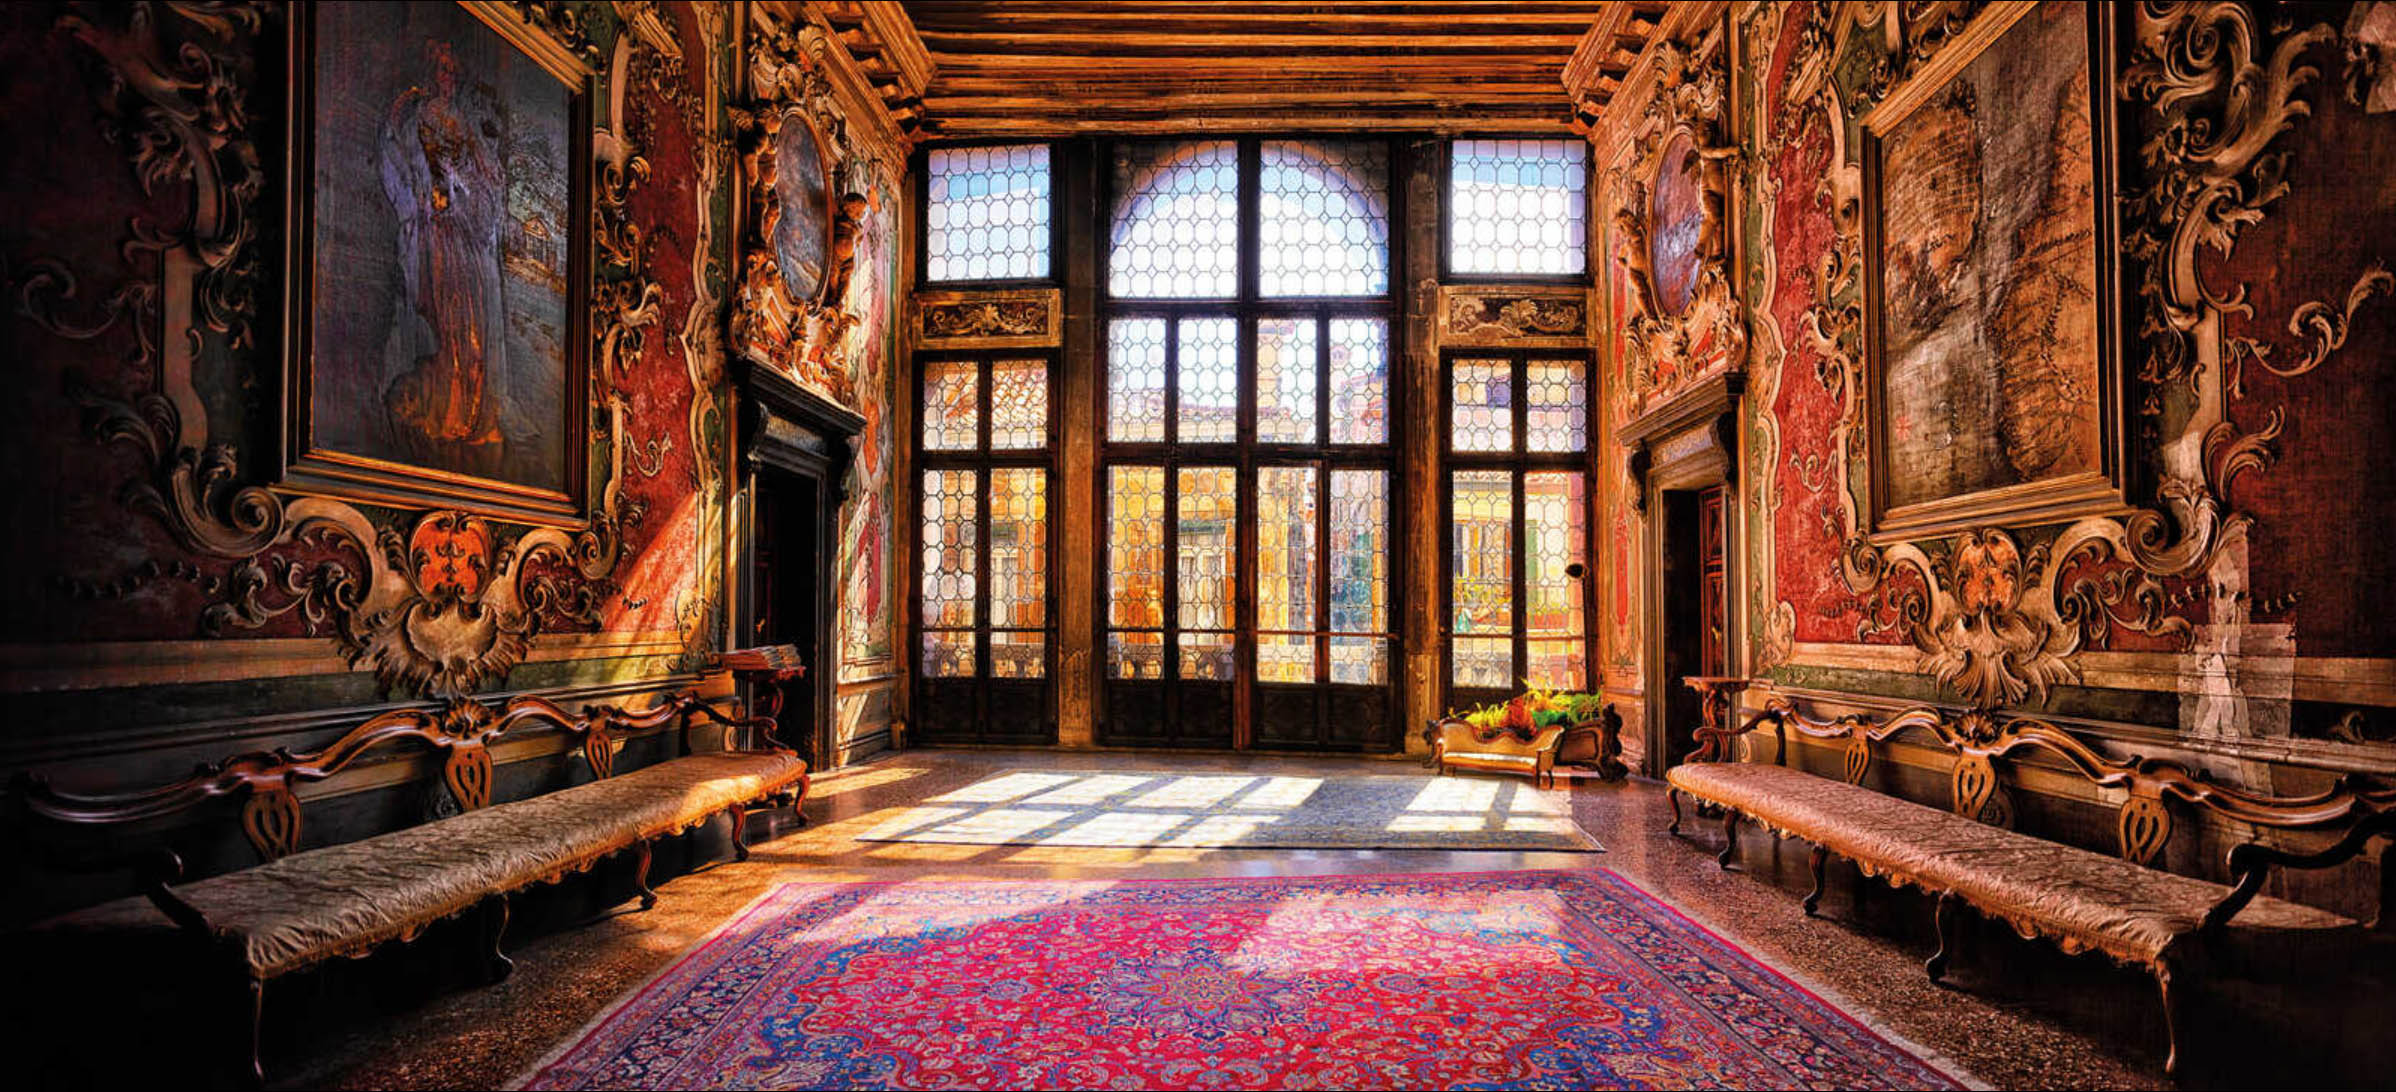 Palazzo di Alvise by Werner Pawlok - Day tour of Venice